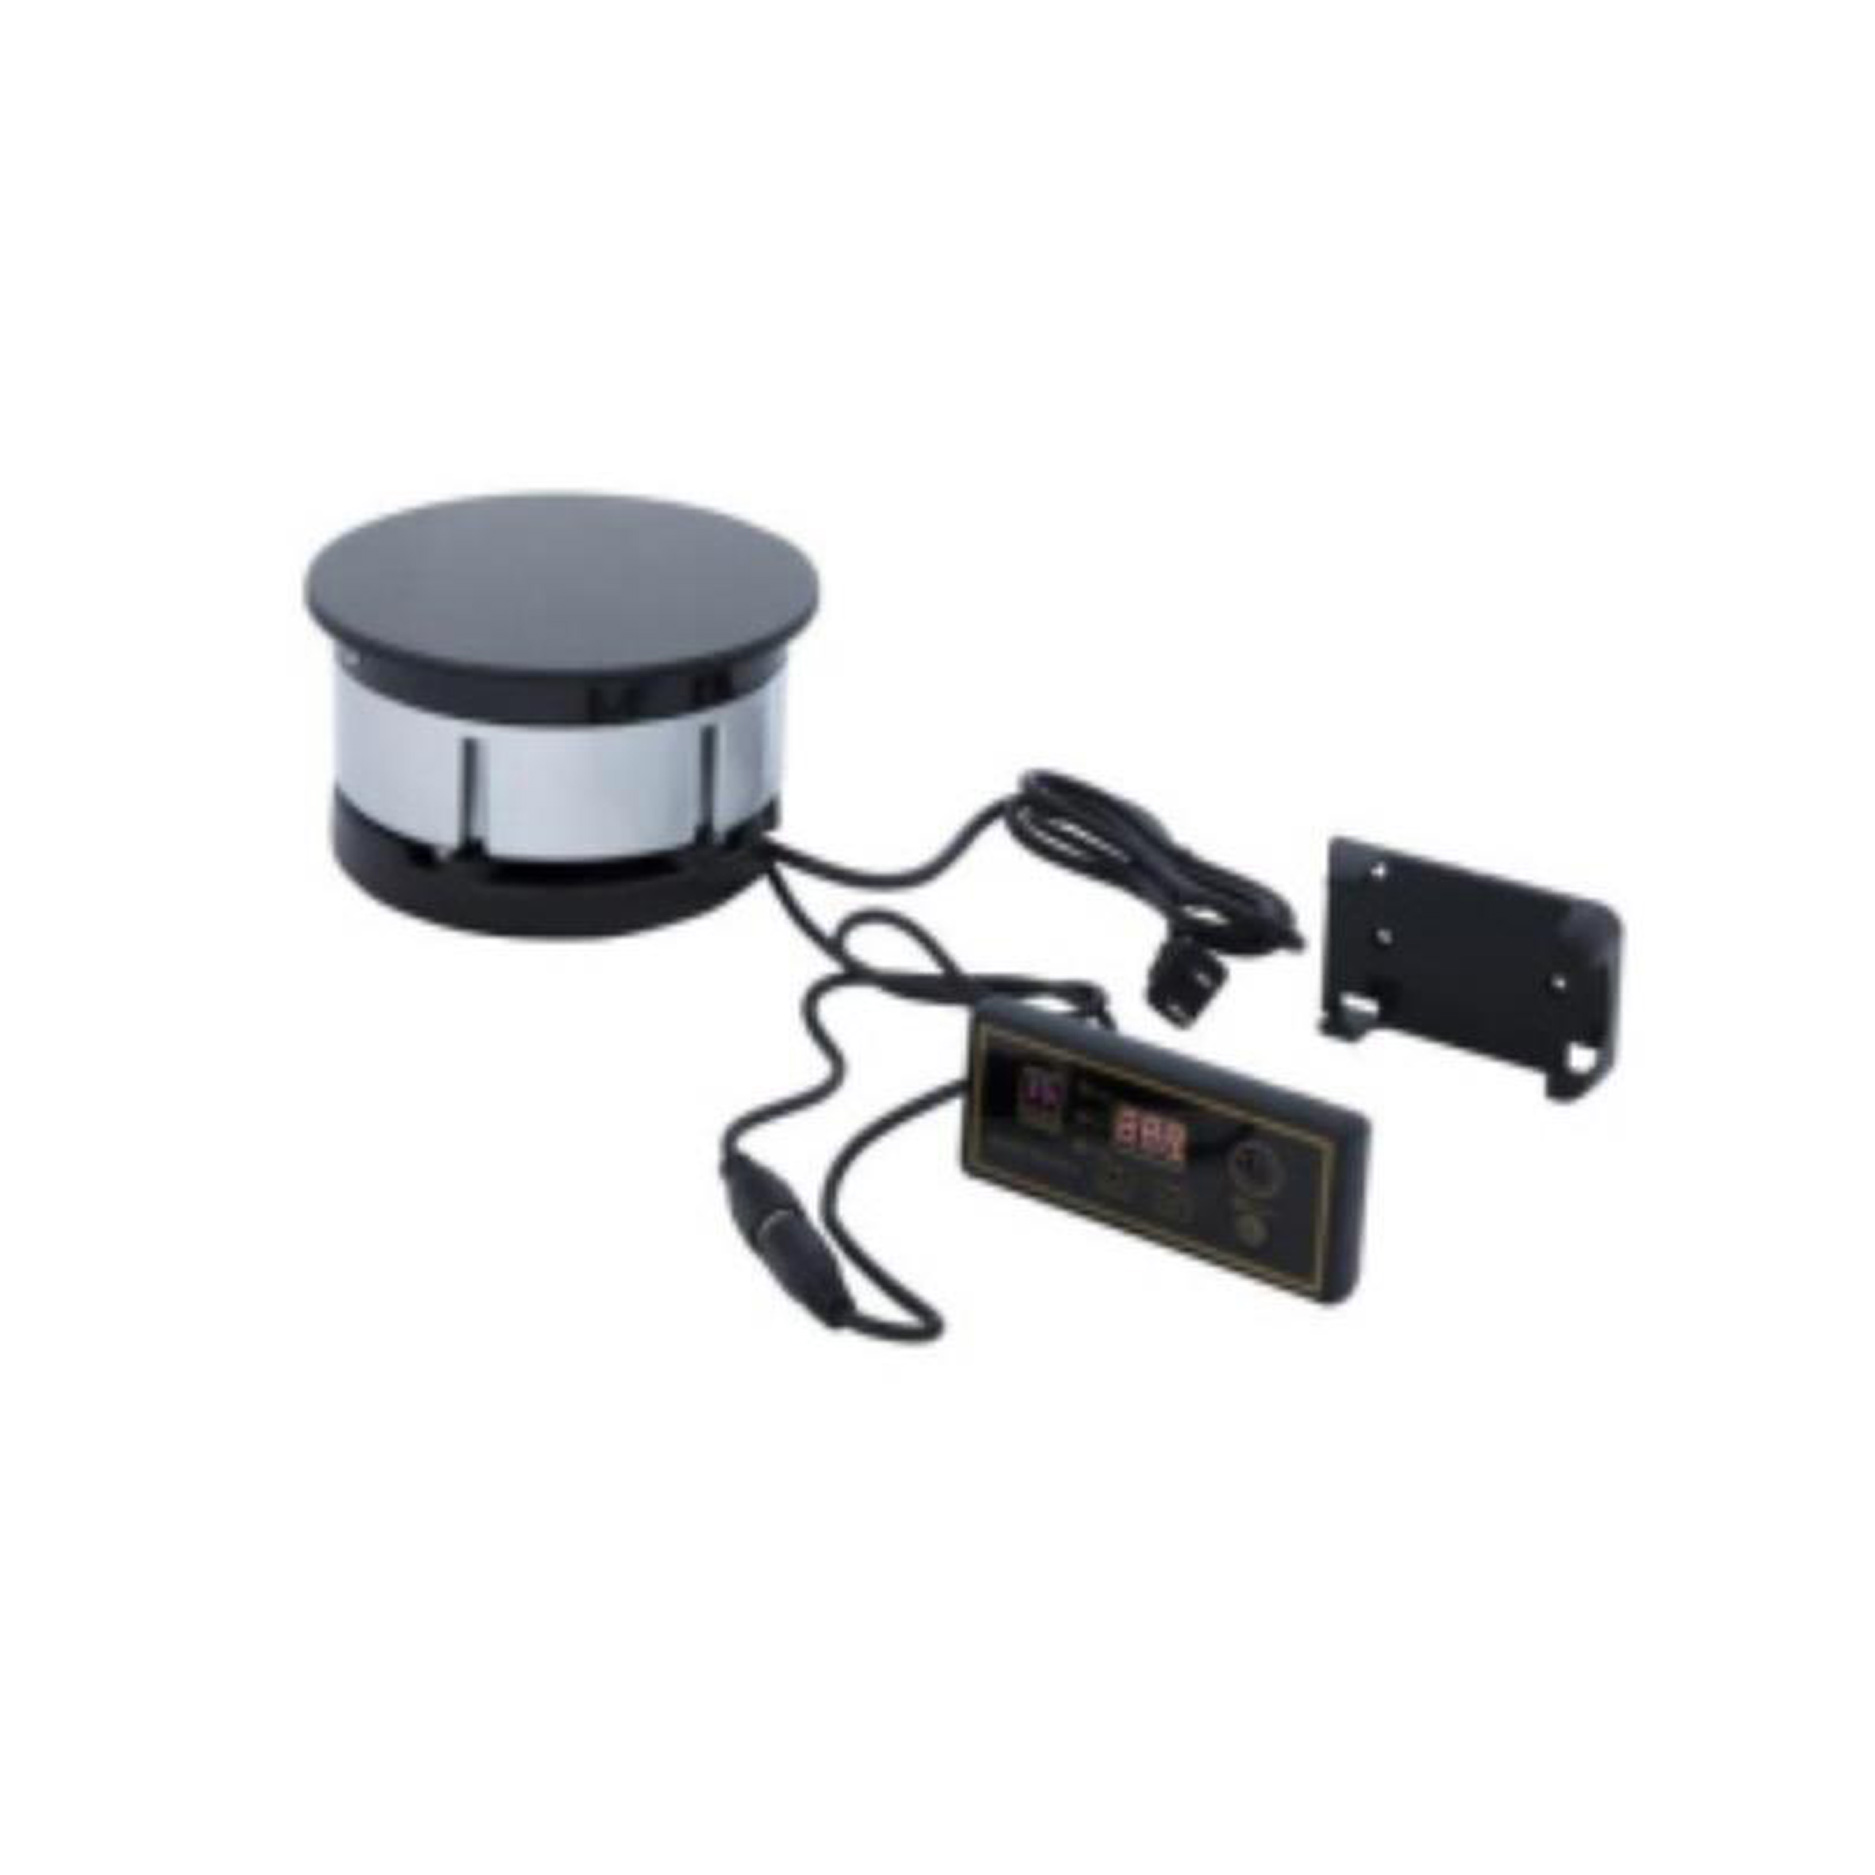 Induction heater for beverage urn, $25/day